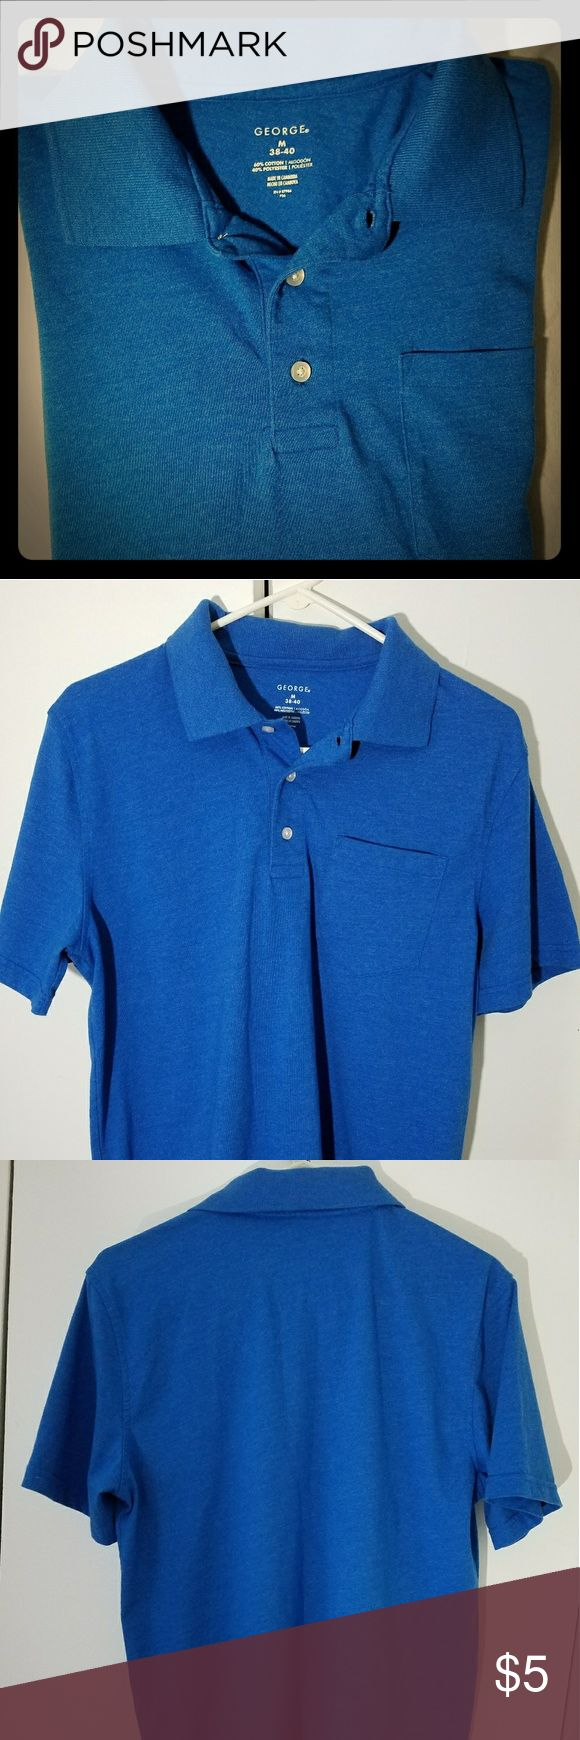 George M Polo Shirt With Pocket 60% Cotton/40% Polyester. 38-40. Comfortable and Collared. Blue with 3 buttons in the front. Perfectly Casual or ready to do some work. Only wore once. George Shirts Polos